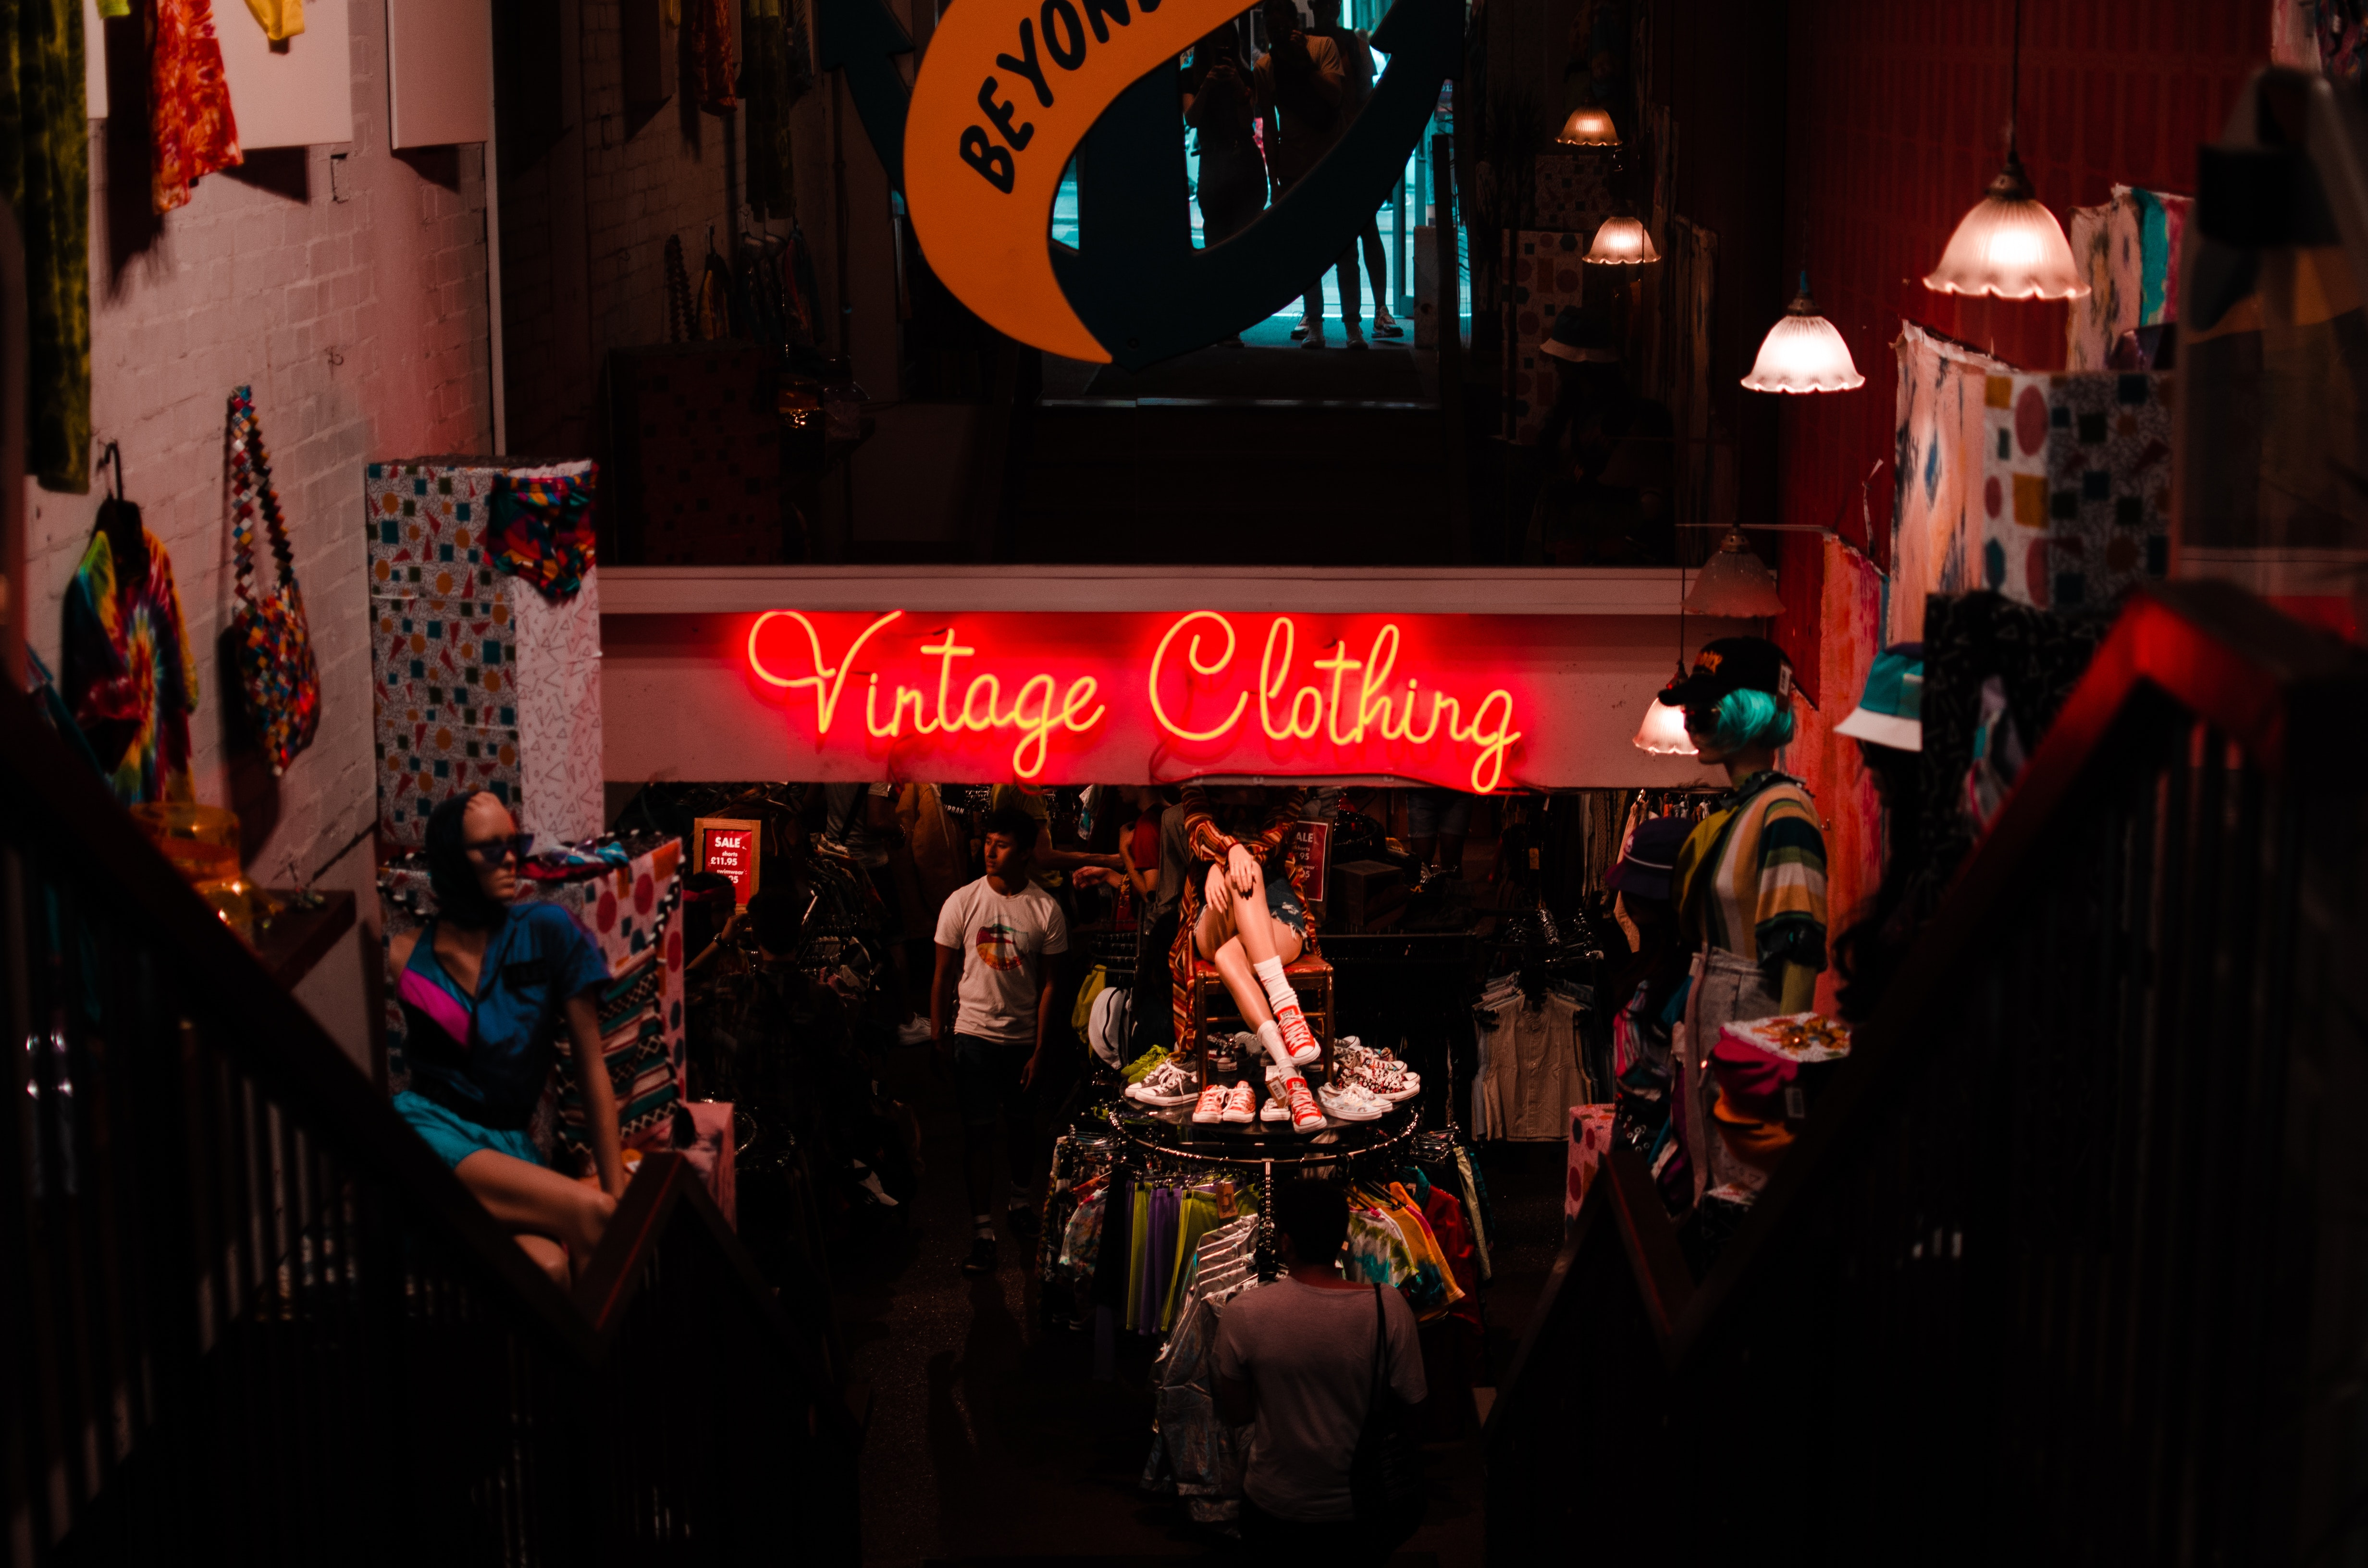 Vintage clothing neon led signs